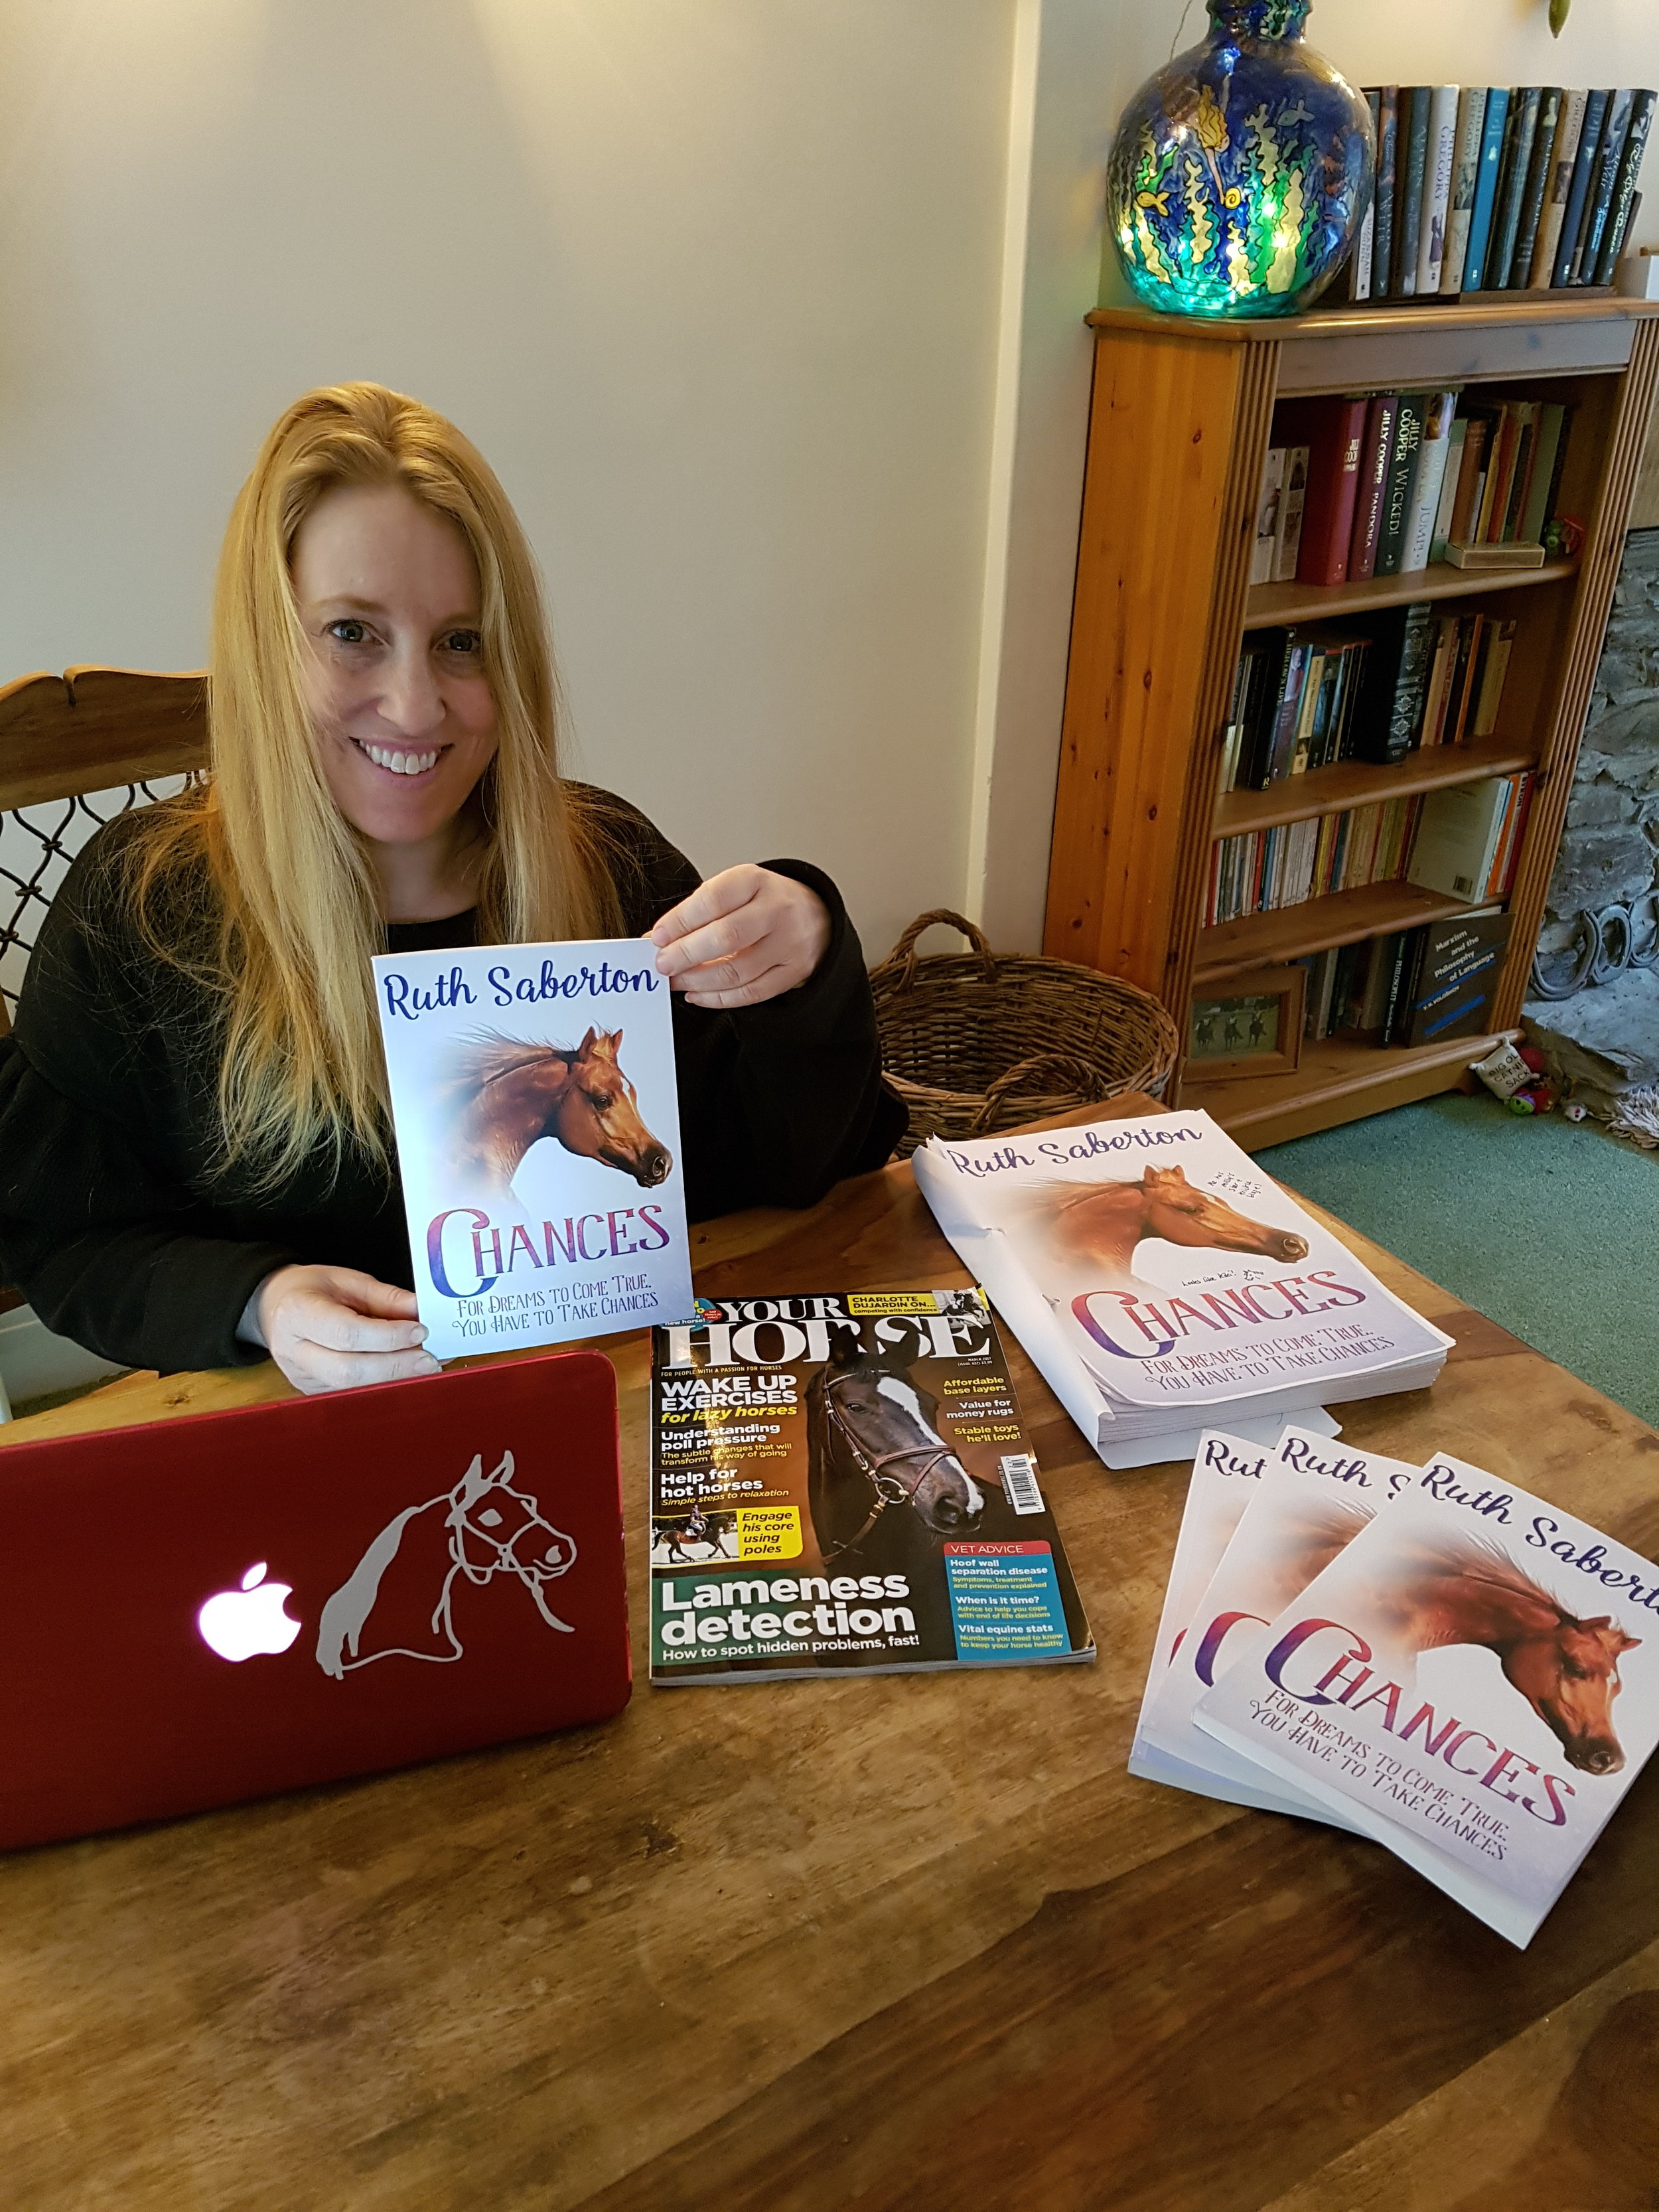 Ruth with her latest novel Chances